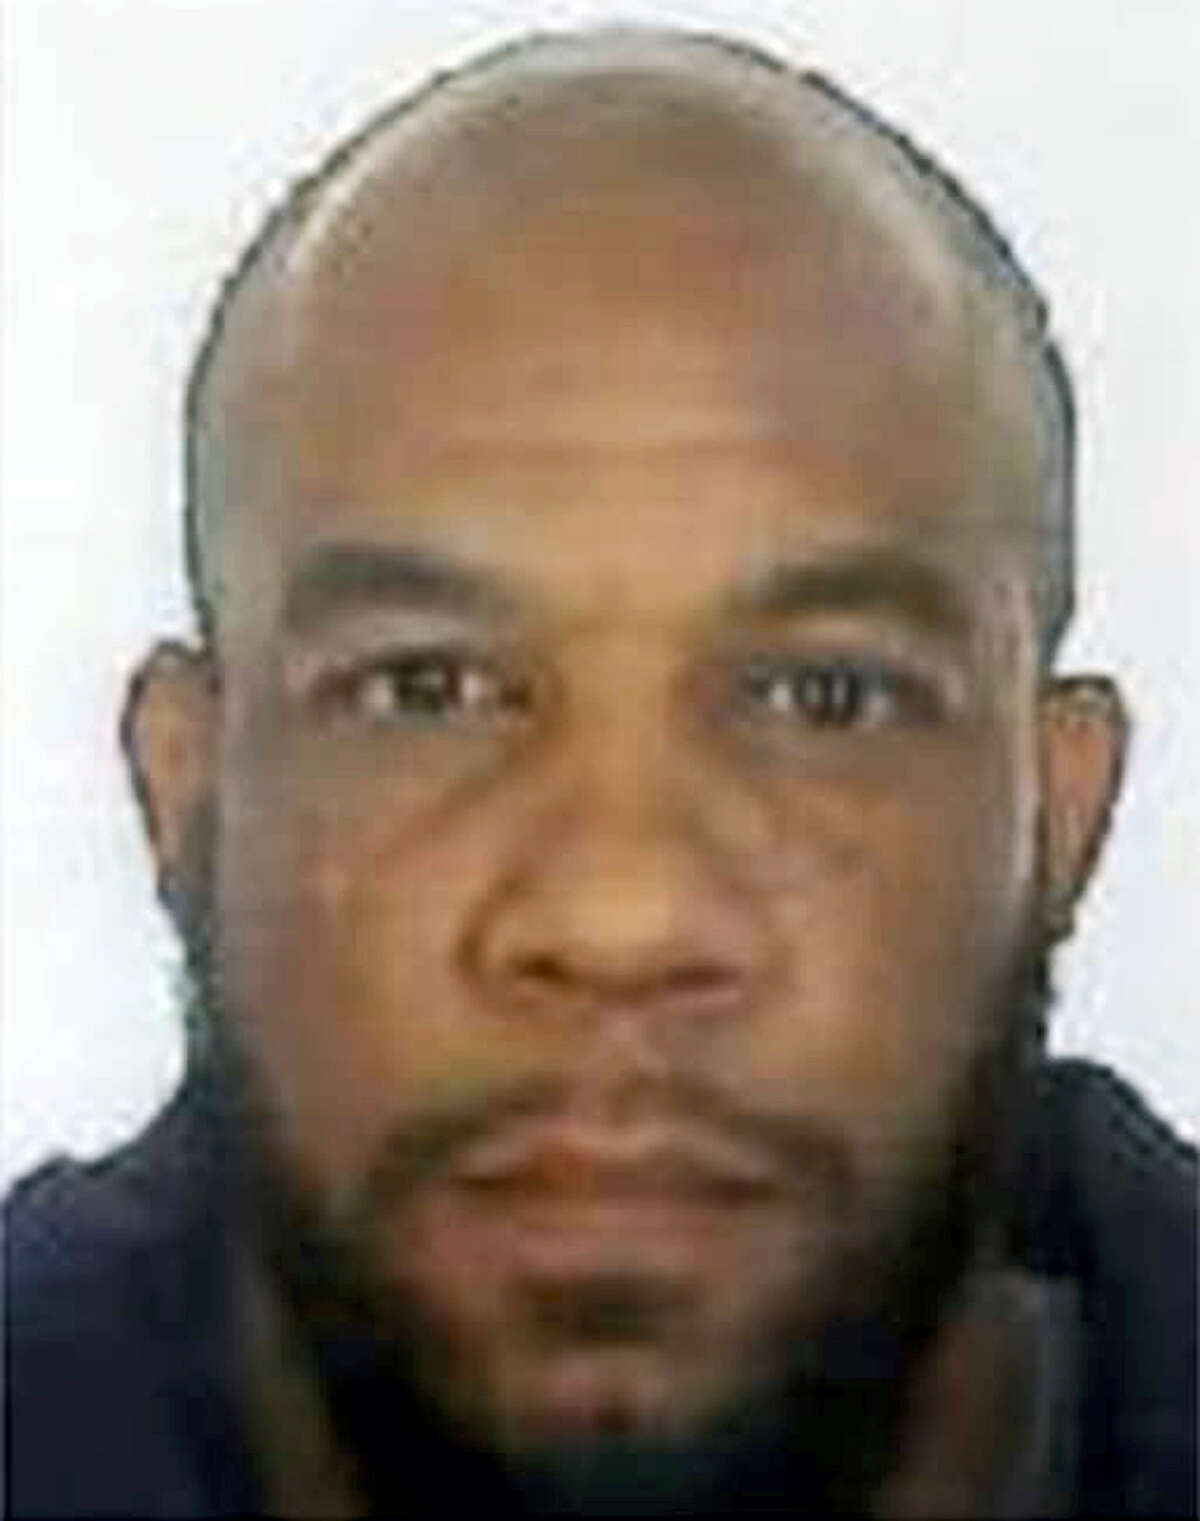 This is an undated photo released by the Metropolitan Police of Khalid Masood. Authorities identified Masood, a 52-year-old Briton as the man who mowed down pedestrians and stabbed a policeman to death outside Parliament in London, saying he had a long criminal record and once was investigated for extremism — but was not currently on a terrorism watch list.